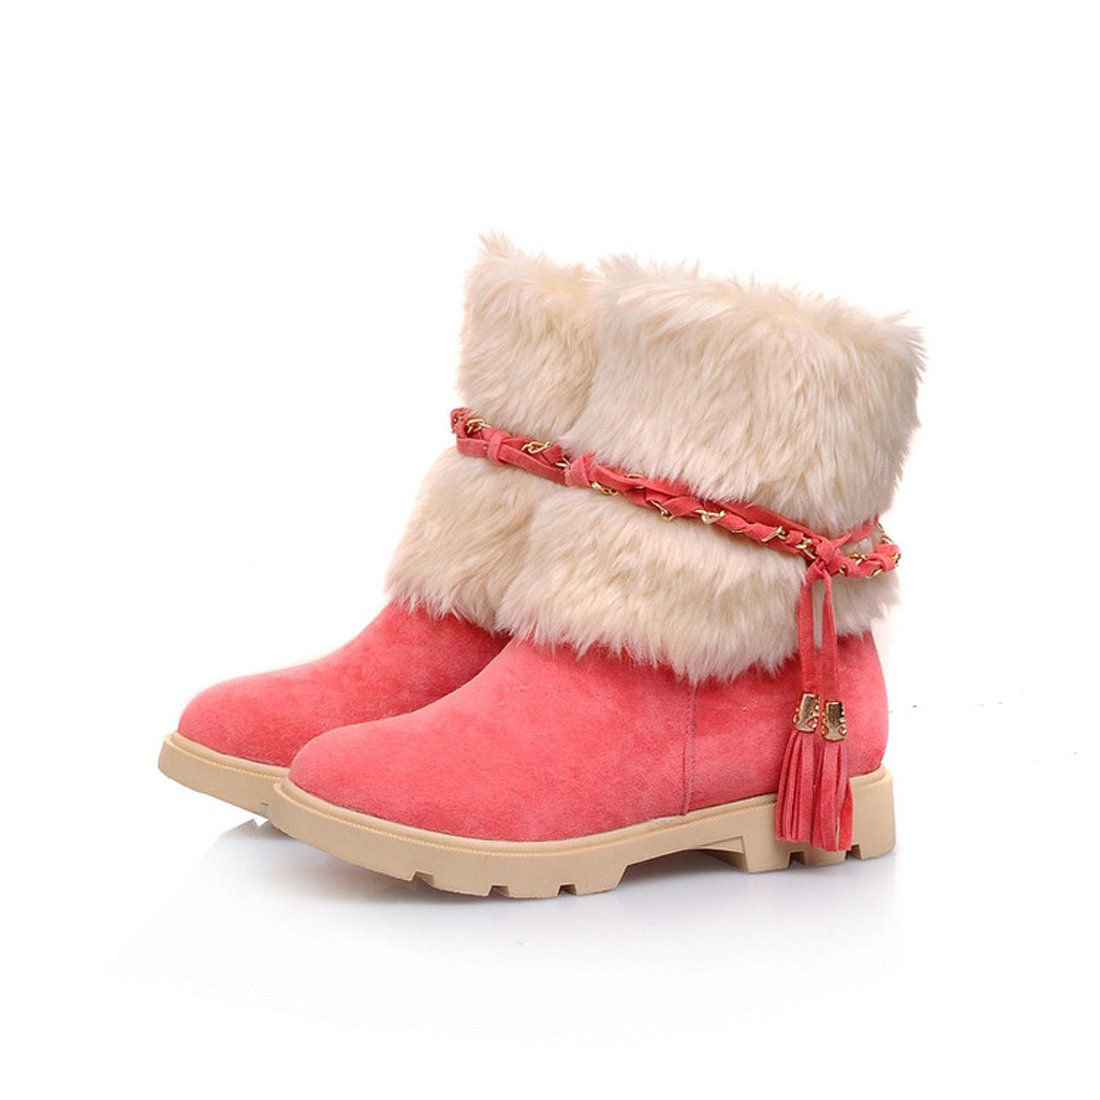 Mostrin Women's Water Resistant Short Boot Fashion Suede Flat Heel Winter Faux Fur Snow Boots